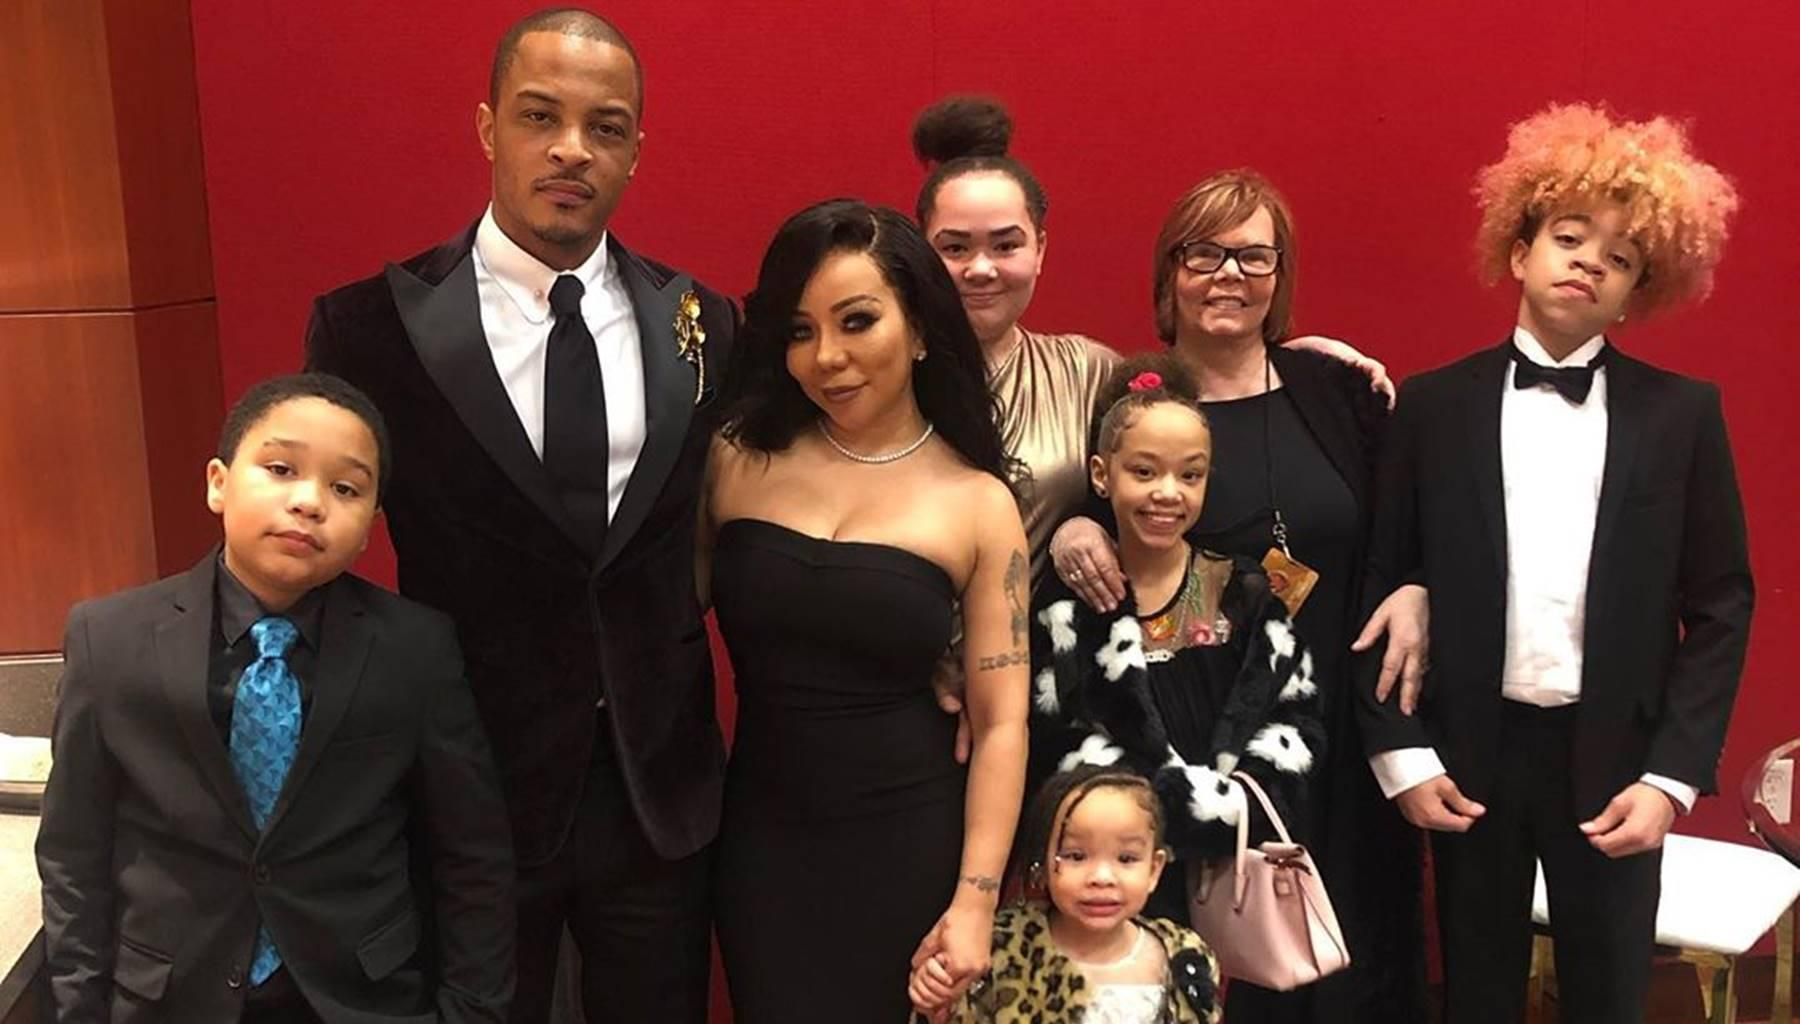 Tiny Harris Praises 'Handsome' Husband T.I. On Big Night -- Photos With Children Including Heiress Go Viral